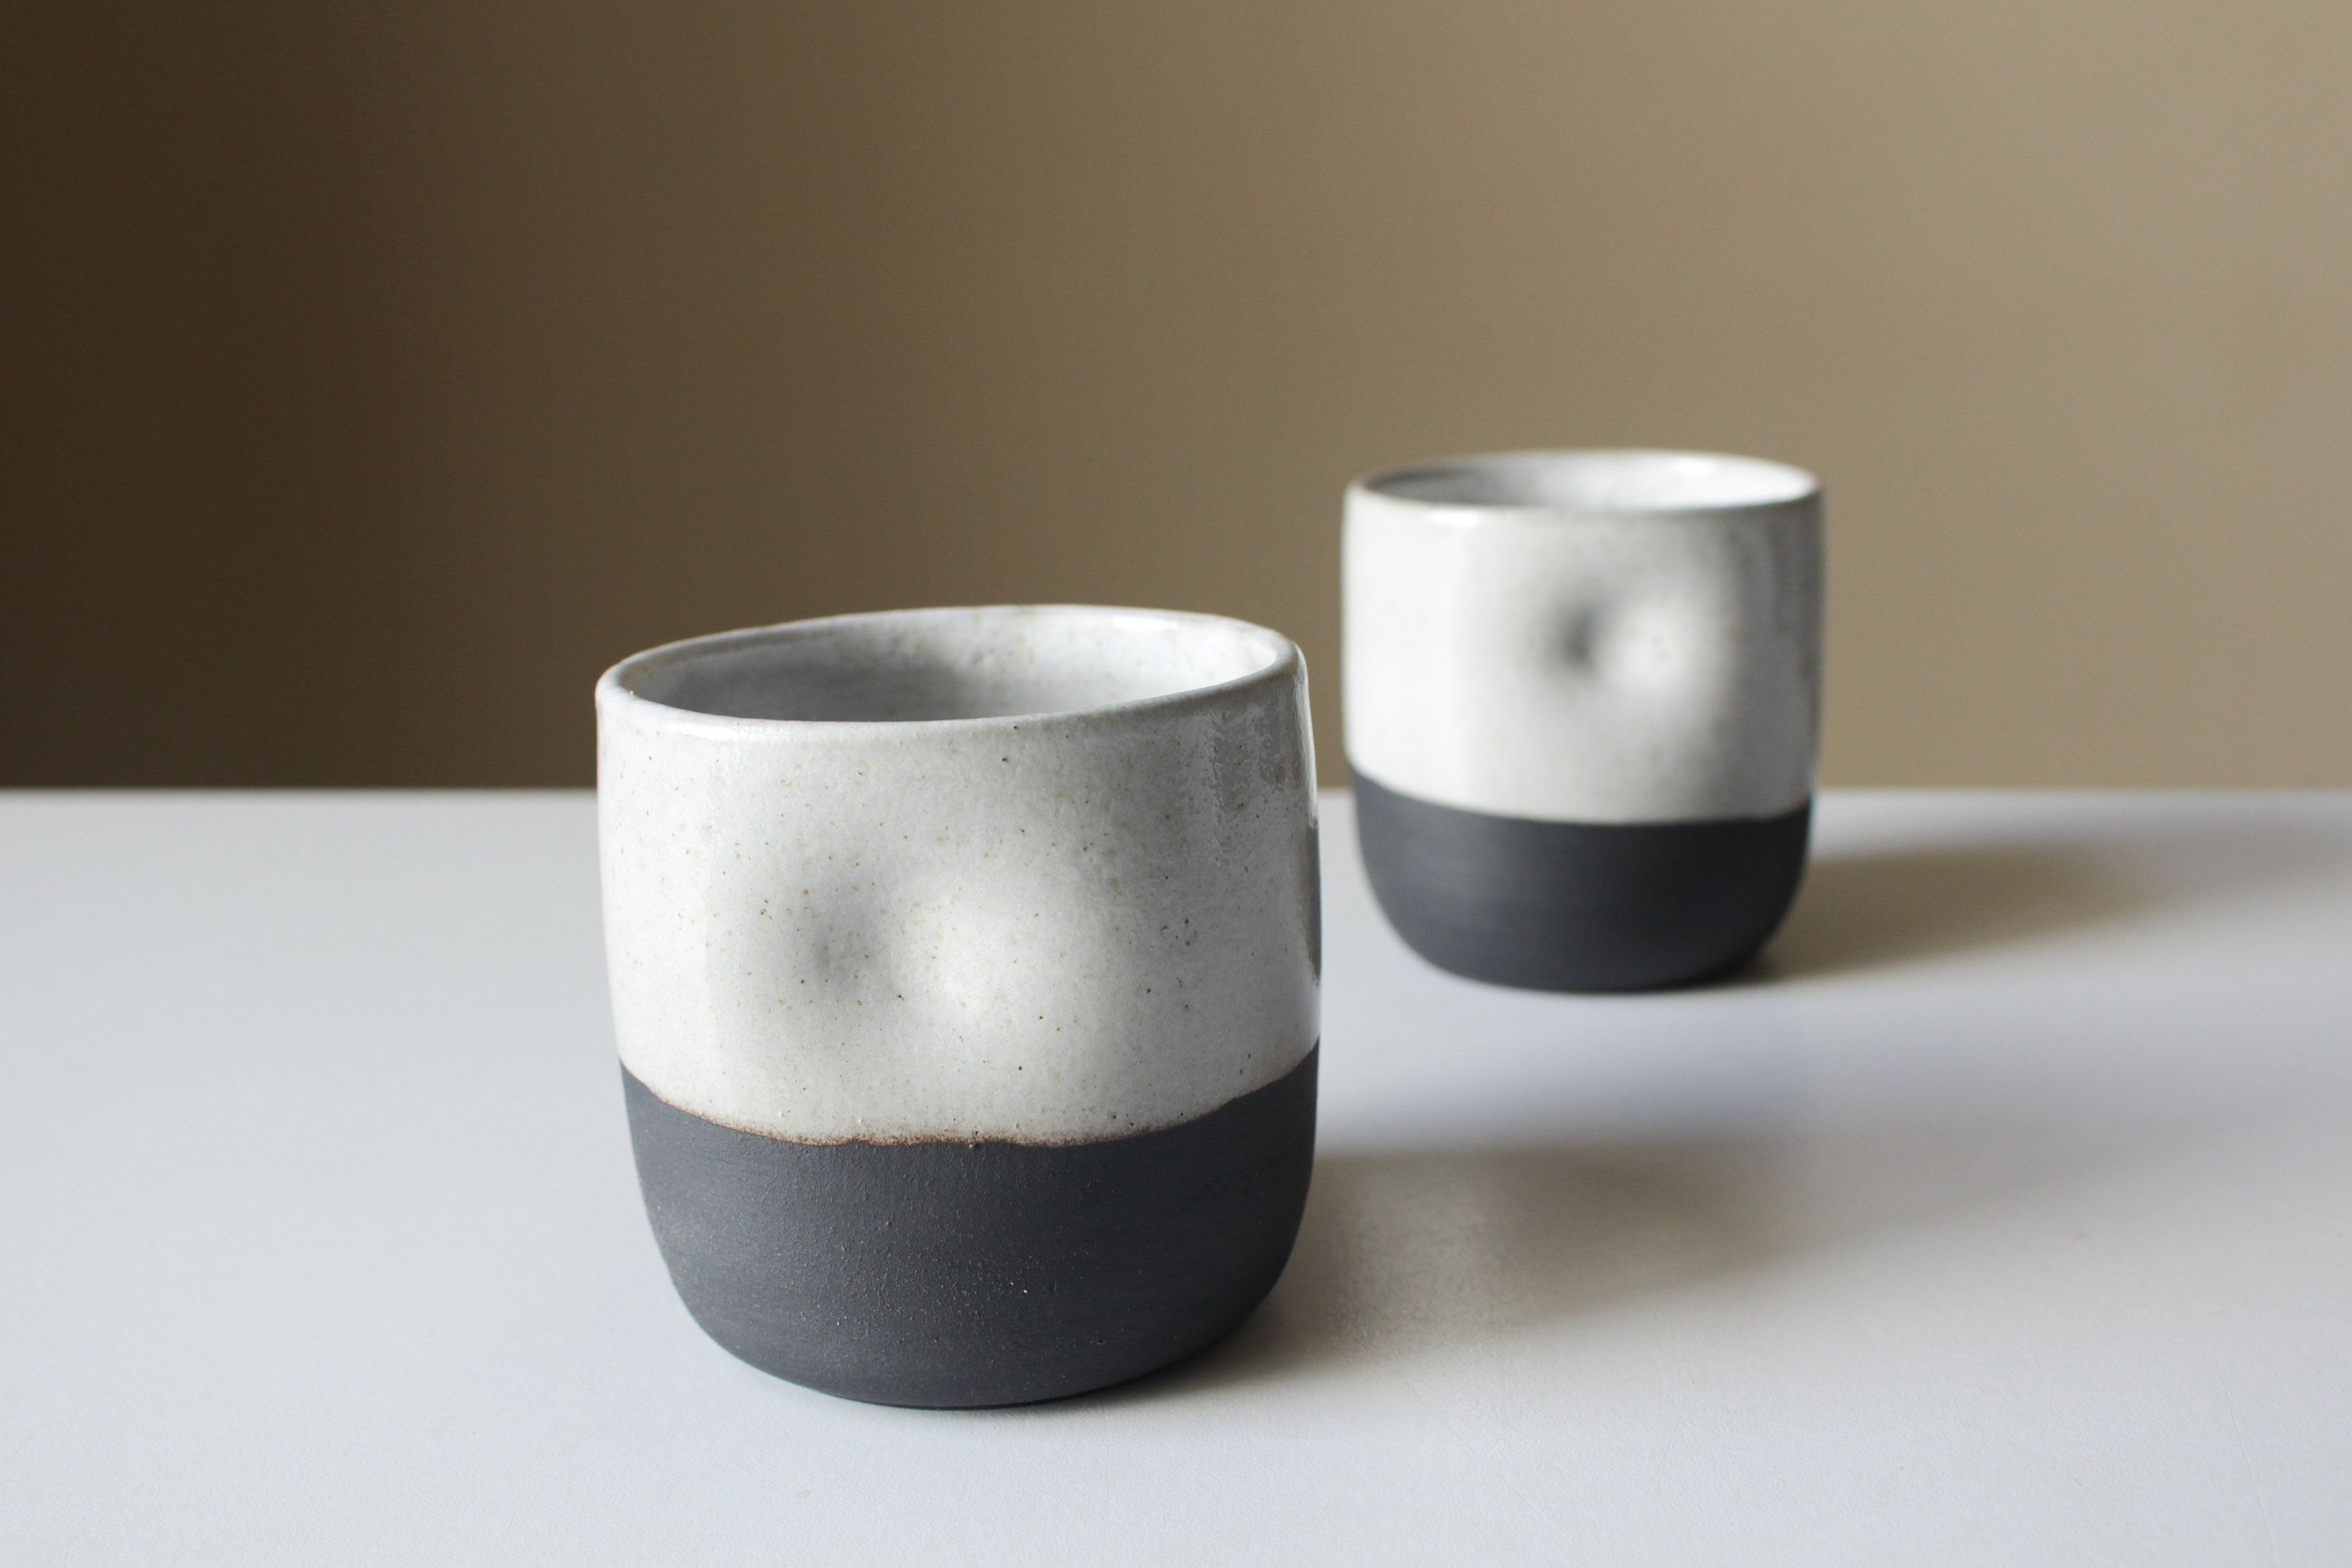 Cord X Clay Thumbler Ceramic Tumbler Mug Cup With Thumb Hold Black Clay With White Glaze Pottery Modern Glazes For Pottery Black Clay Ceramic Tumbler